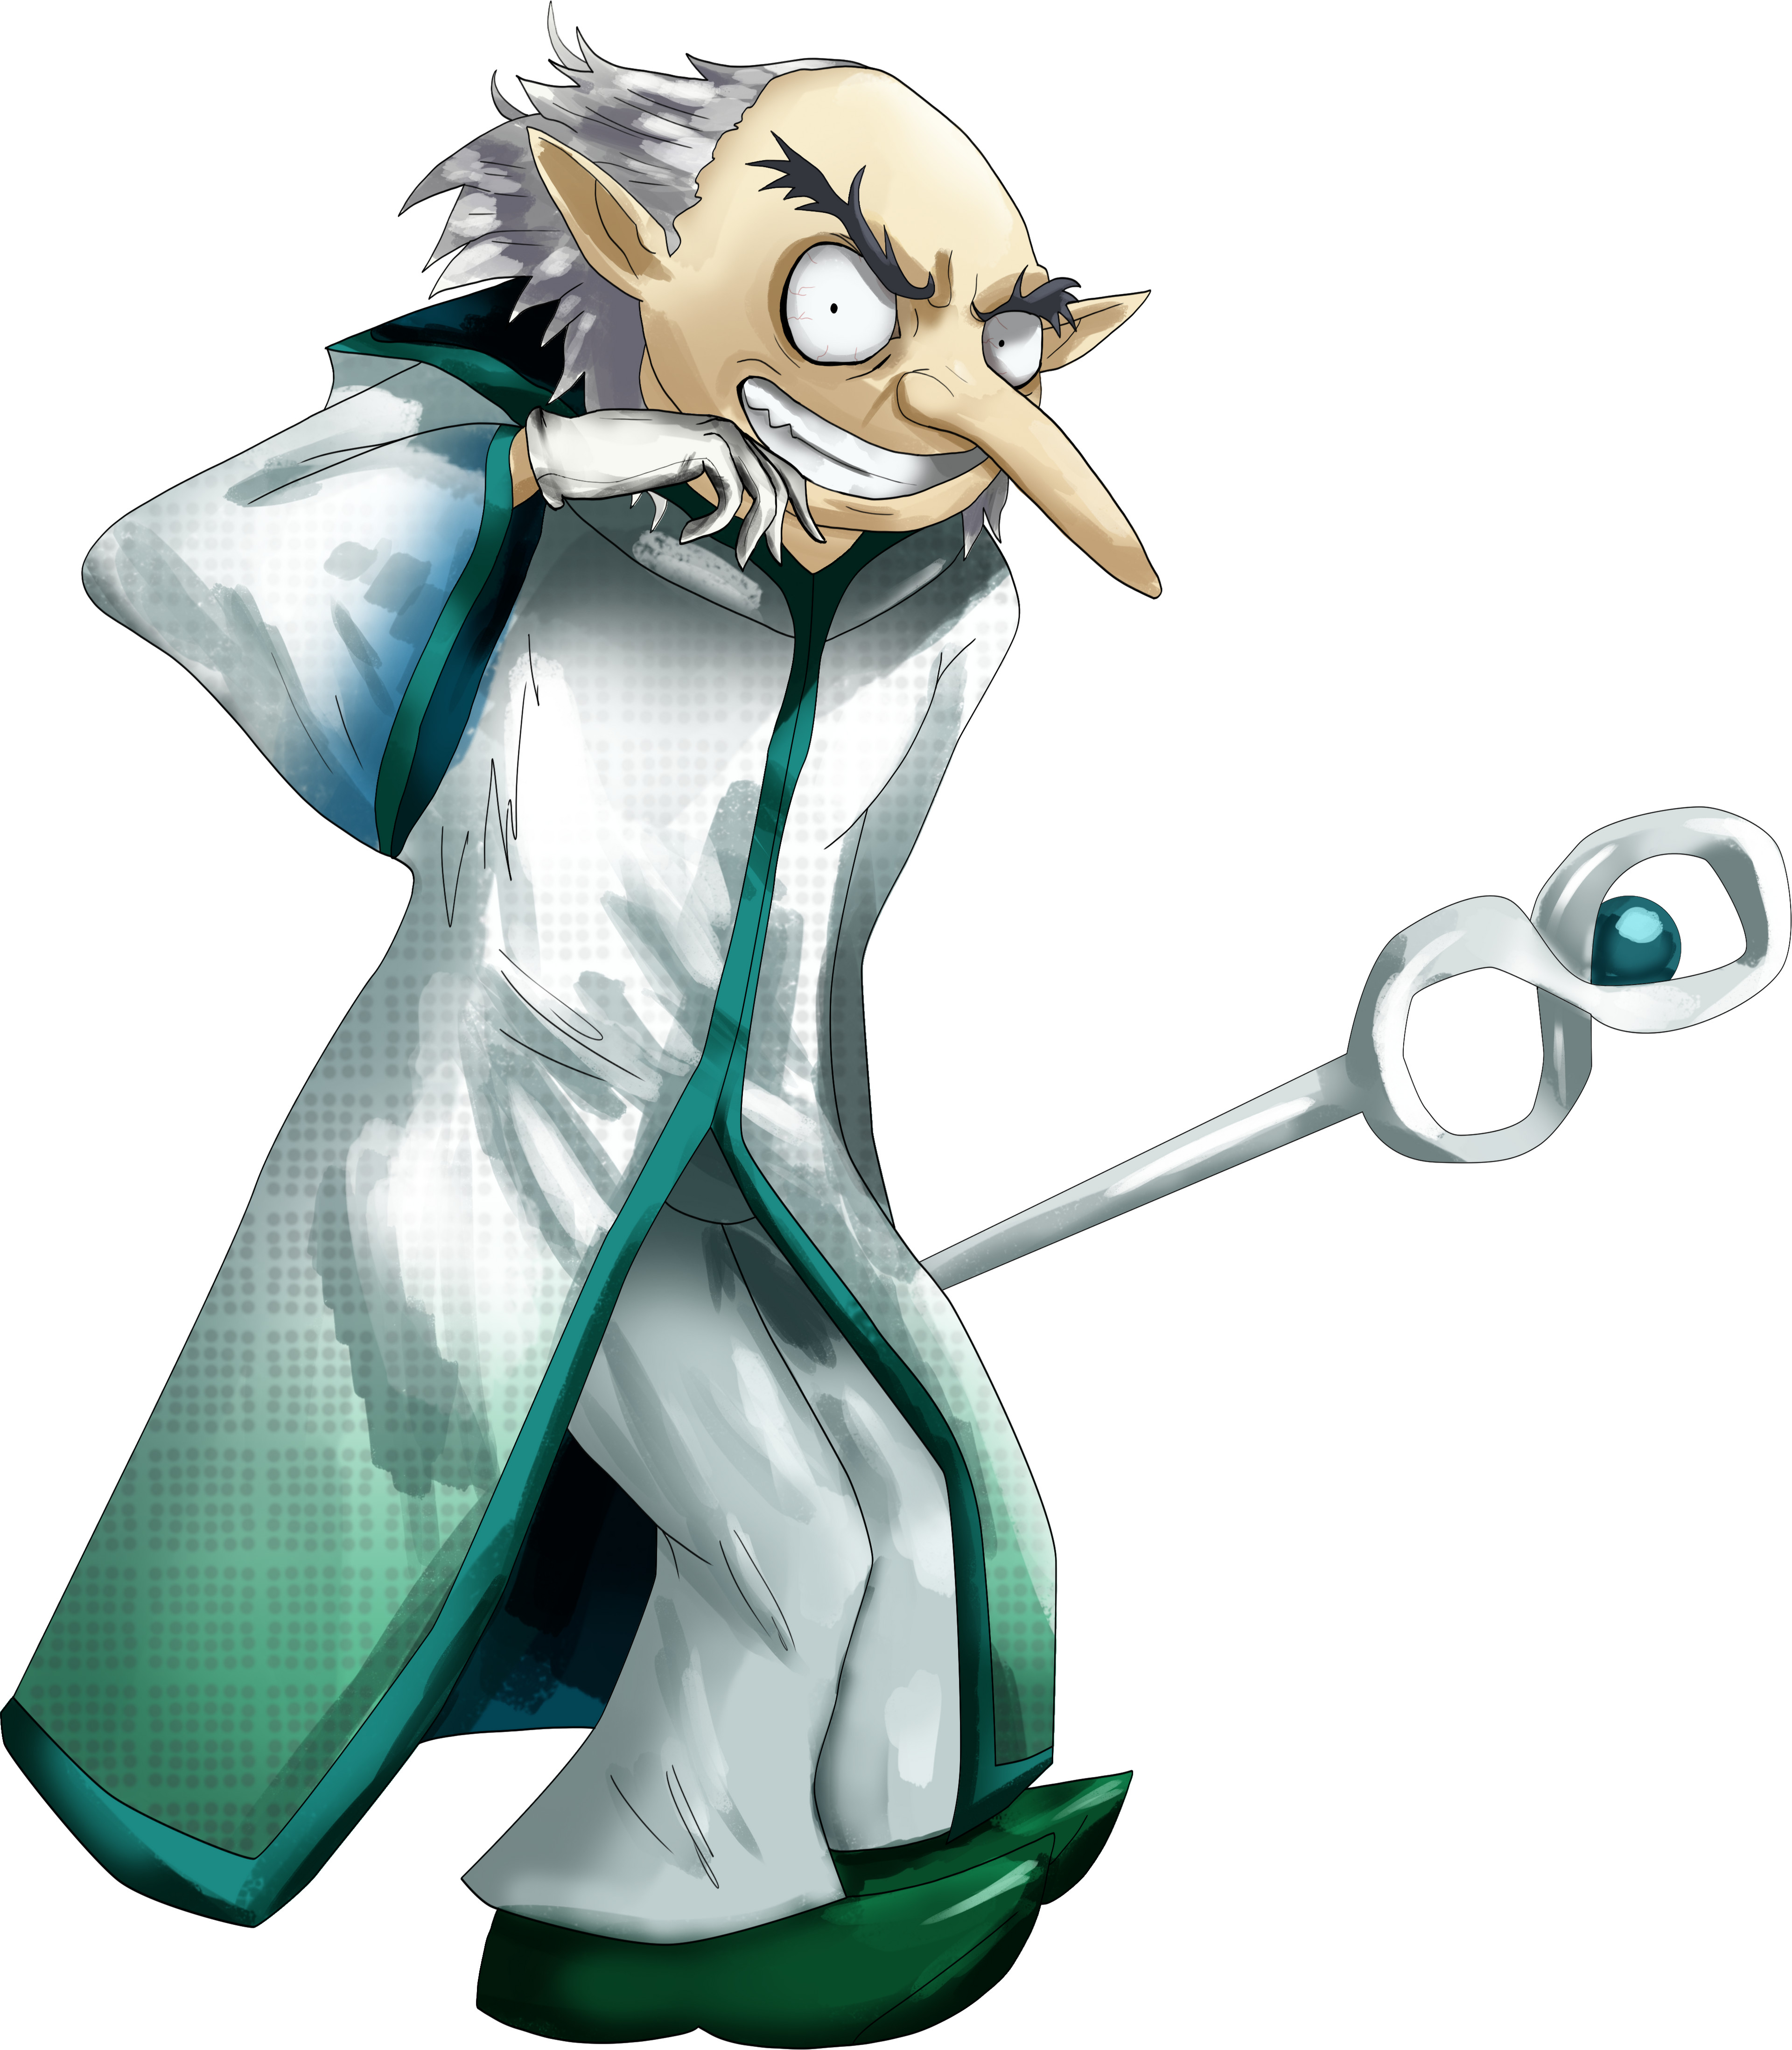 Igor from the Persona Series as the Great Sage. We can finally see him out of the Velvet Room.